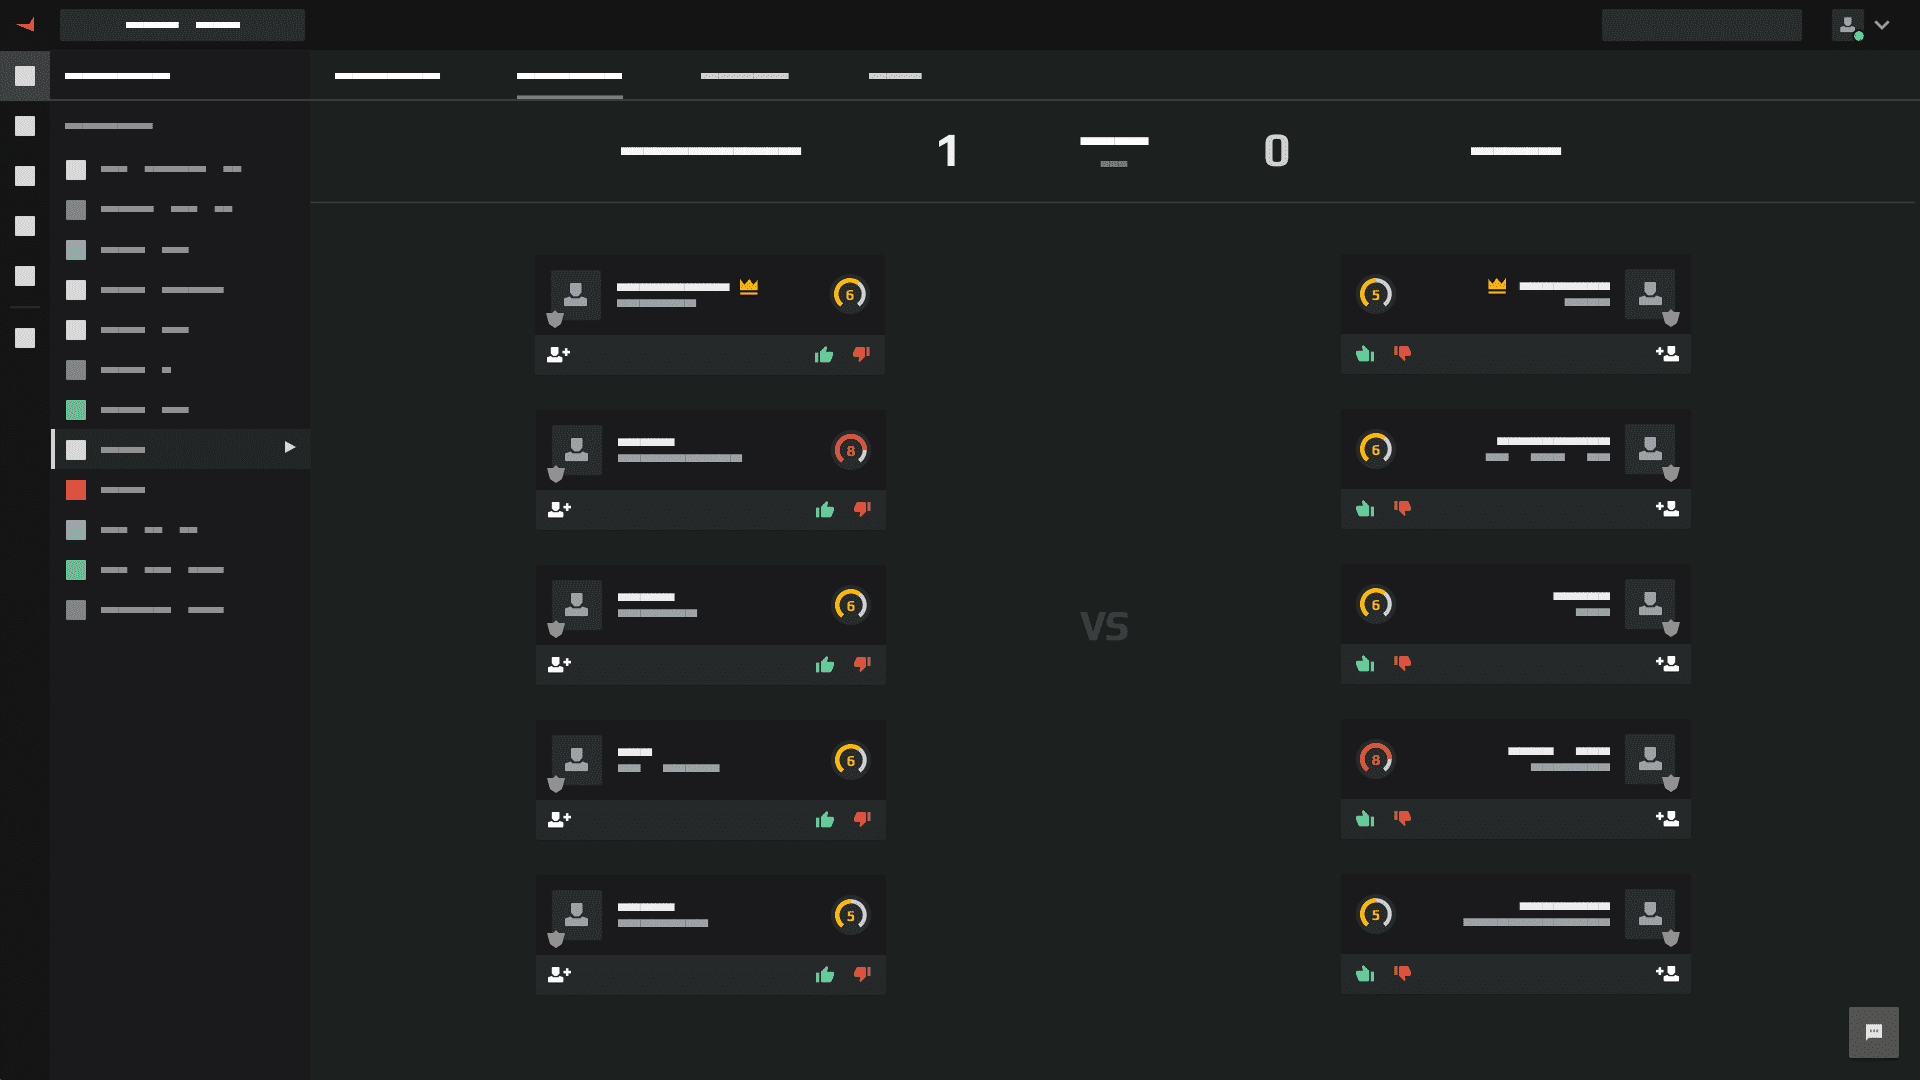 Faceit matchmaking